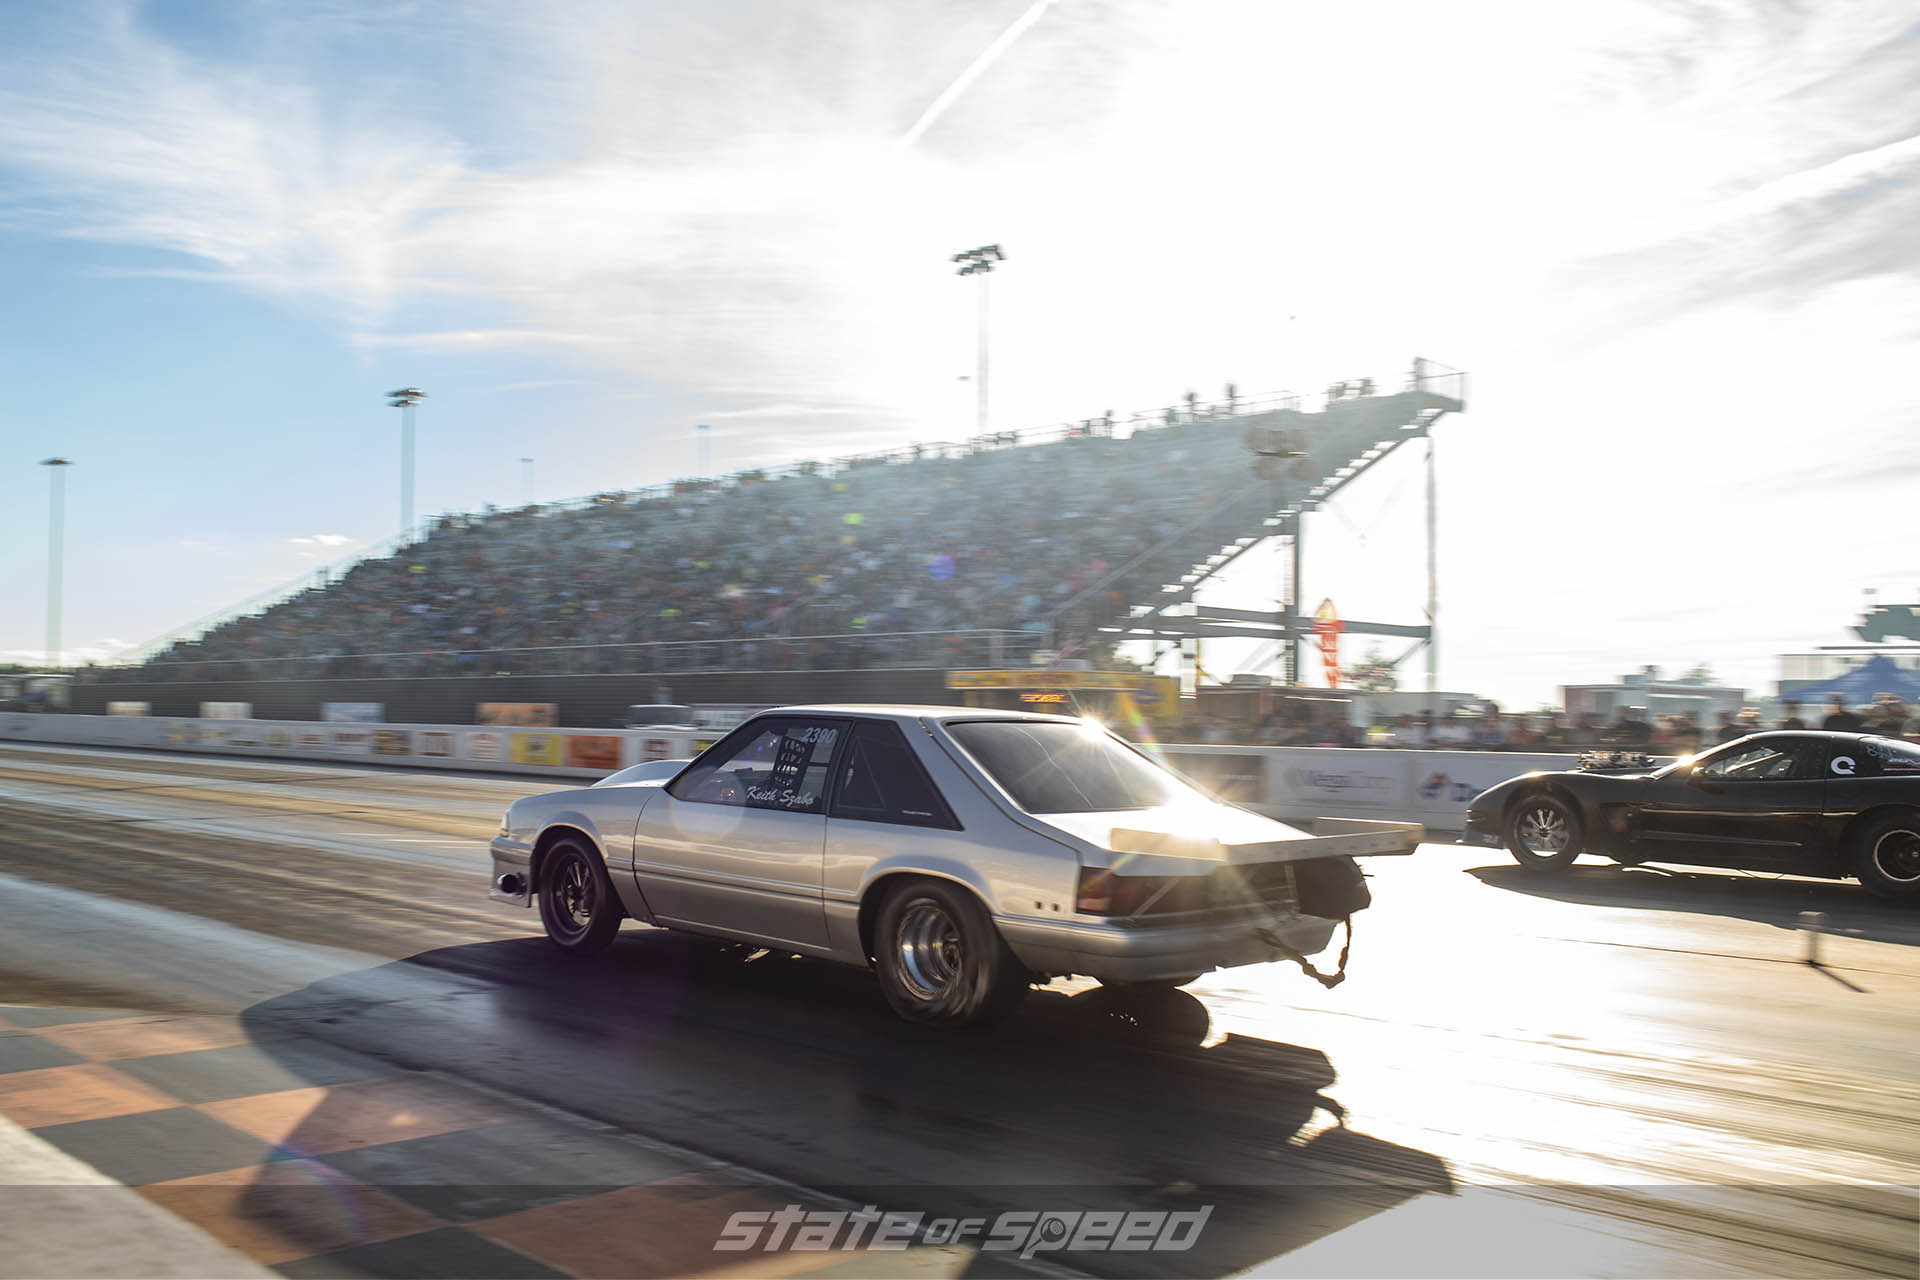 Fox Body Mustang versus Corvette on the dragstrip heads up racing